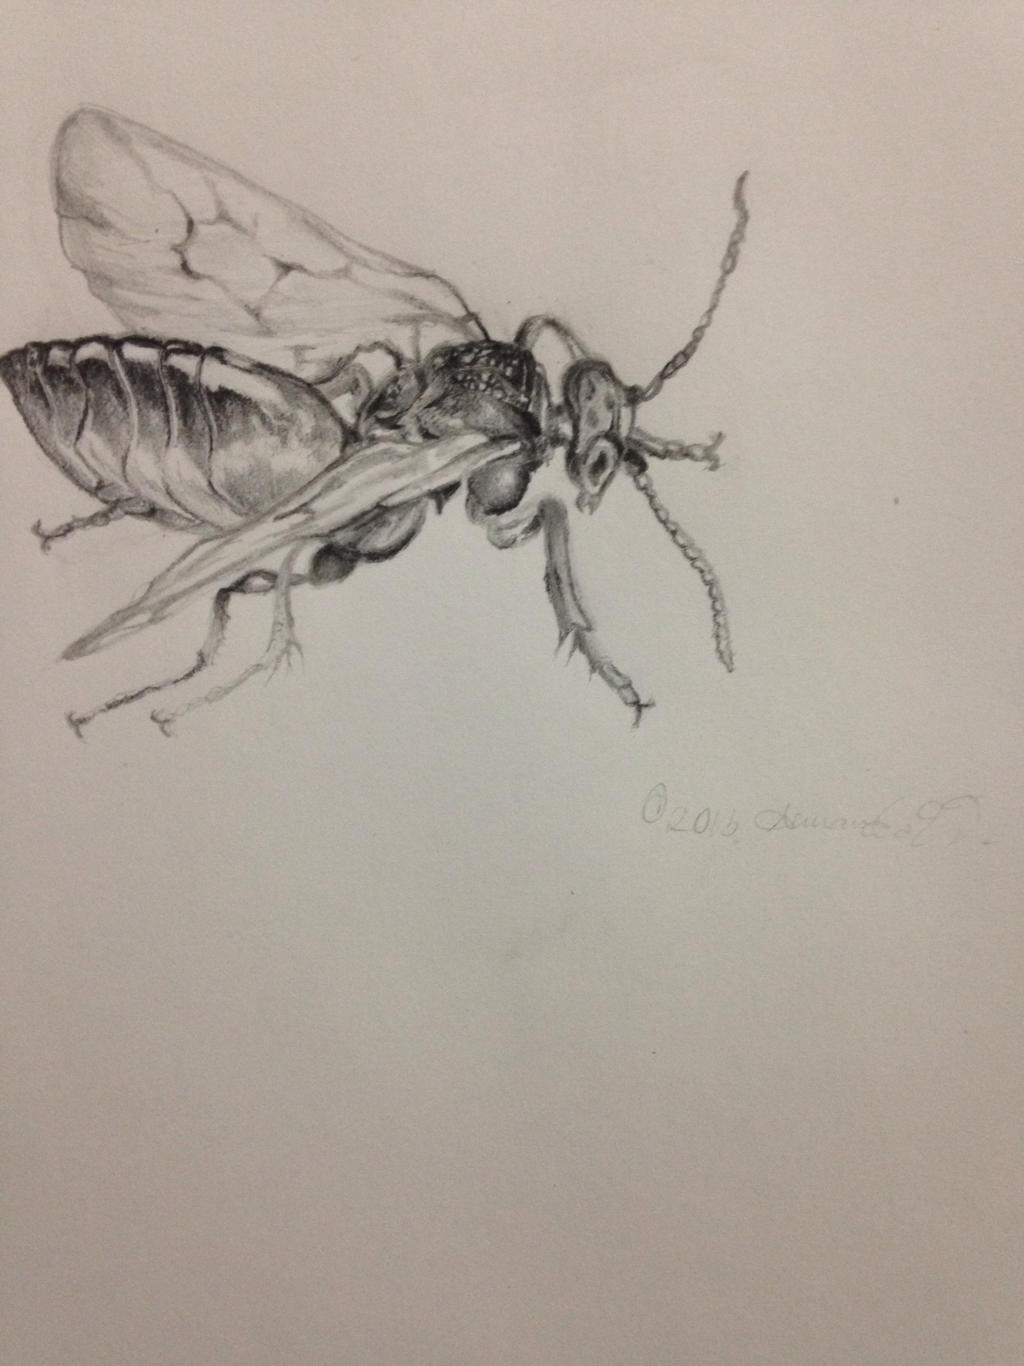 insect drawing by walkingwithdead on deviantart